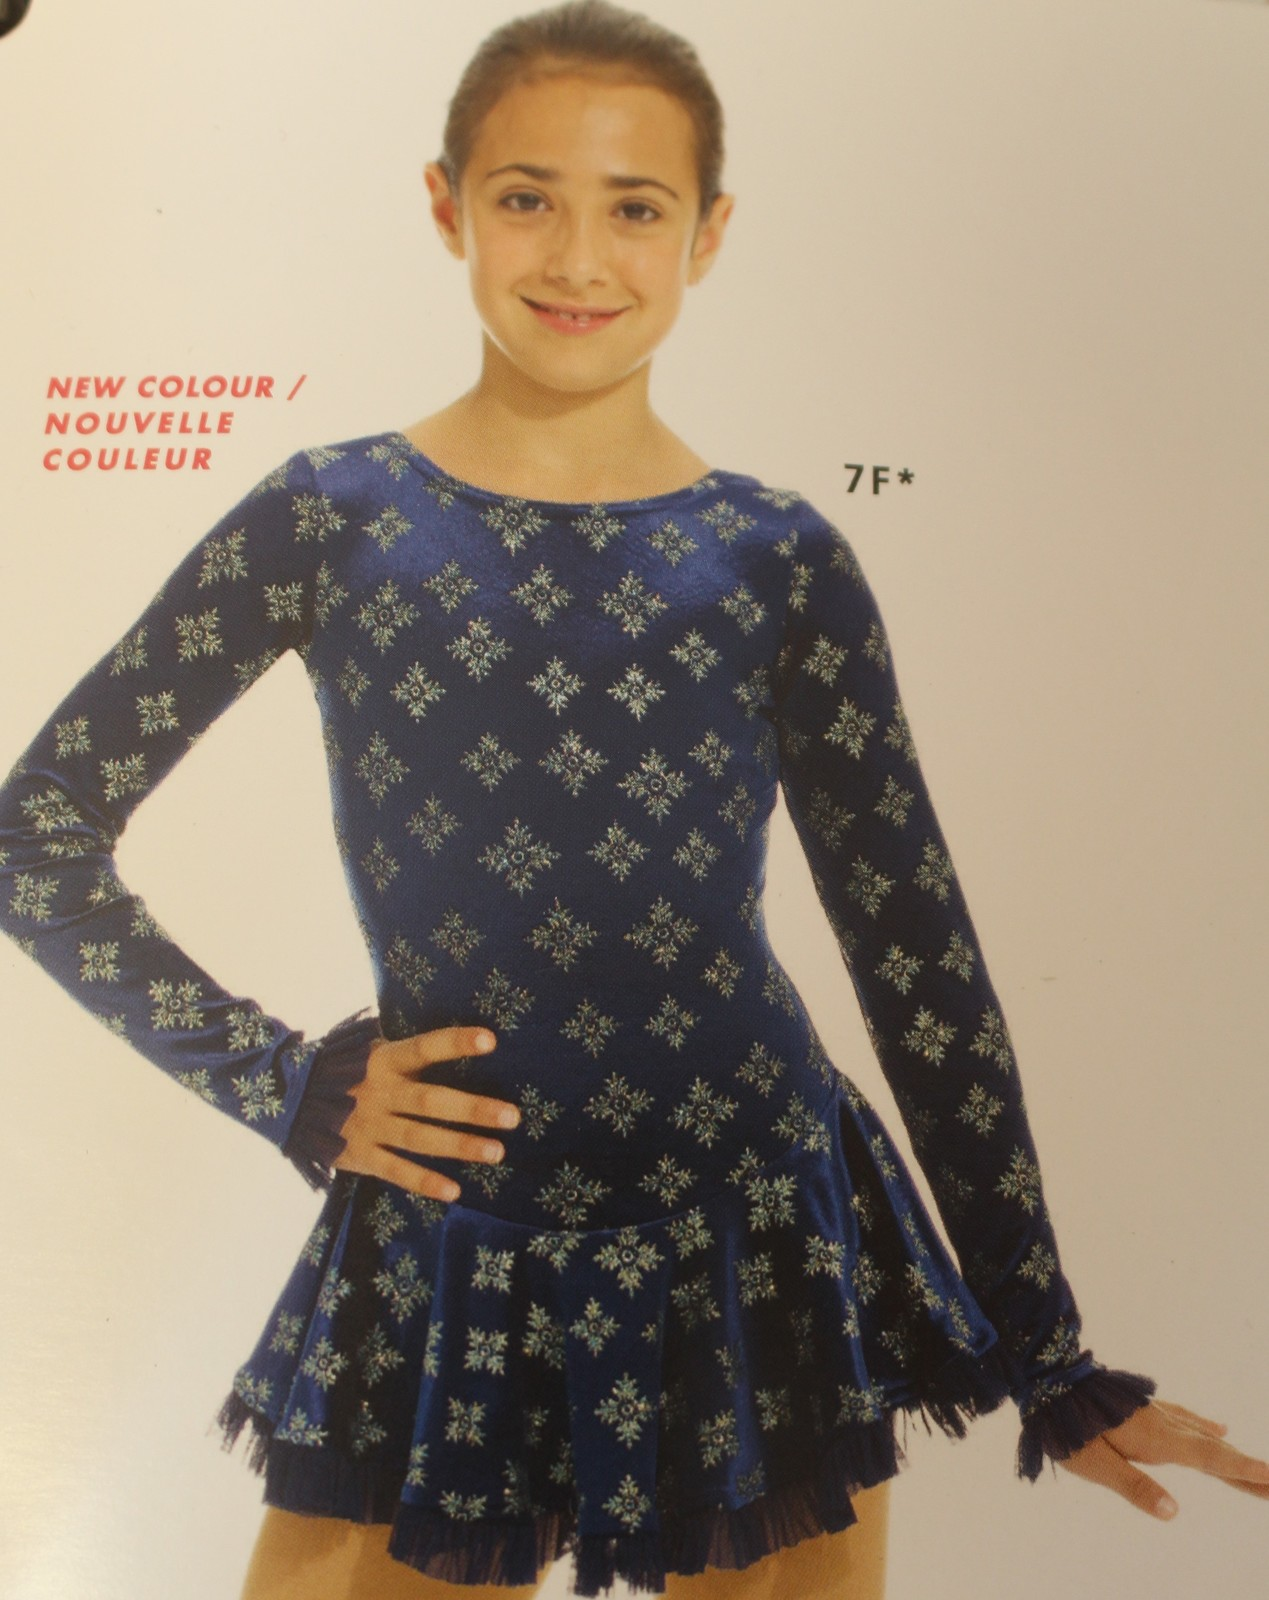 Primary image for Mondor Model 2739 Born to Skate Skating Dress - Blue Snowflakes Size Child 4-6